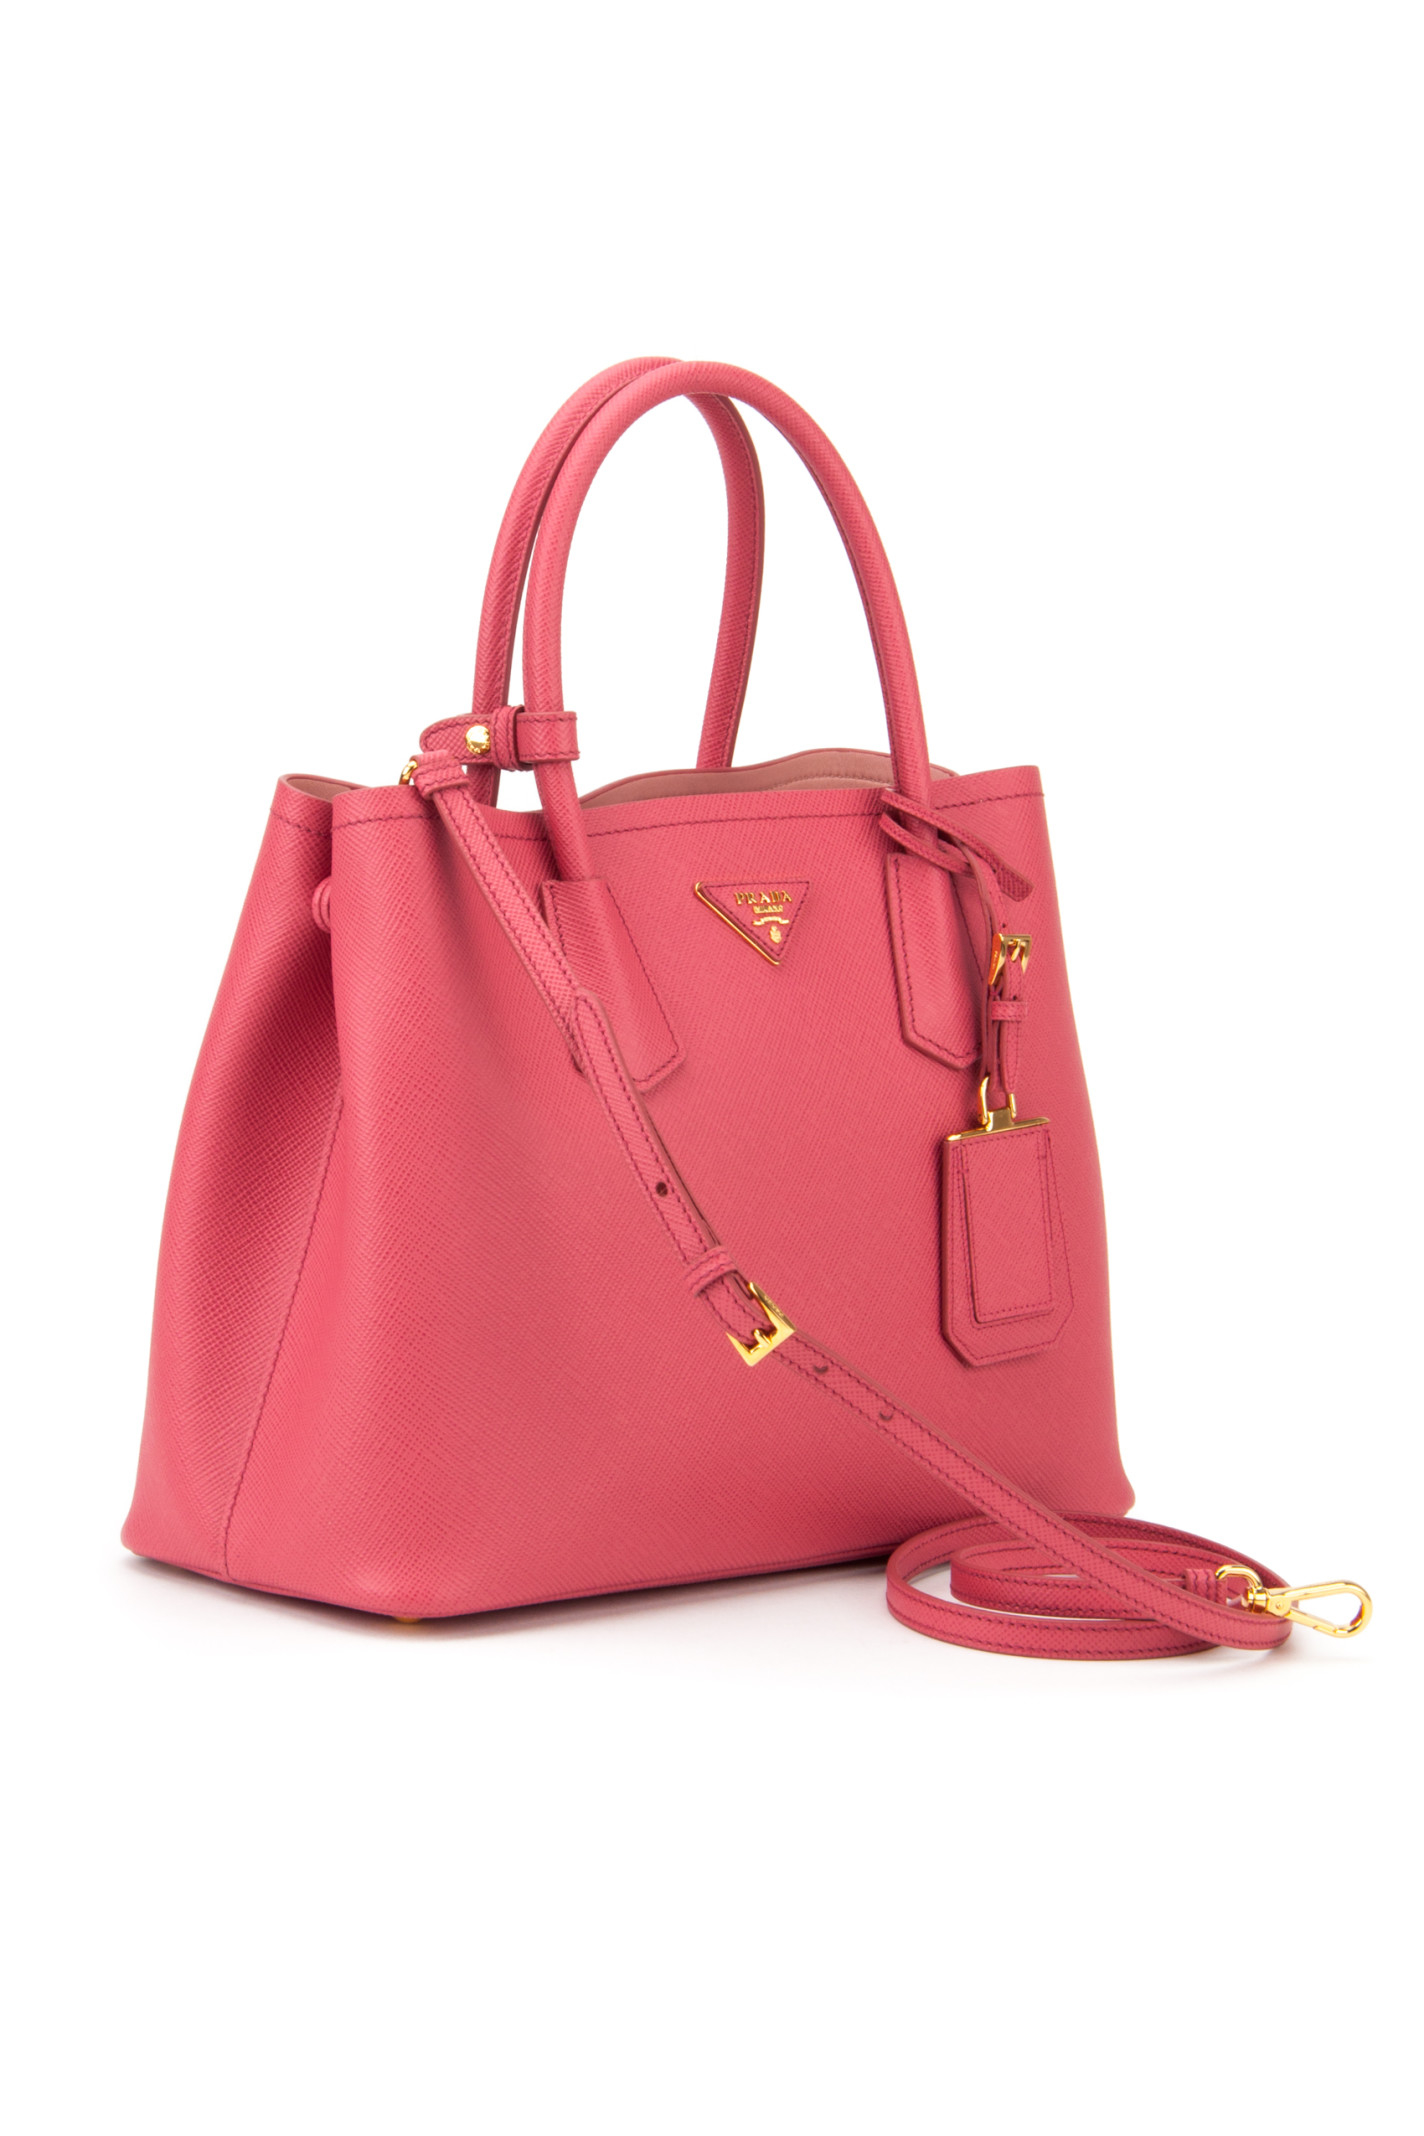 prada small bag 1907